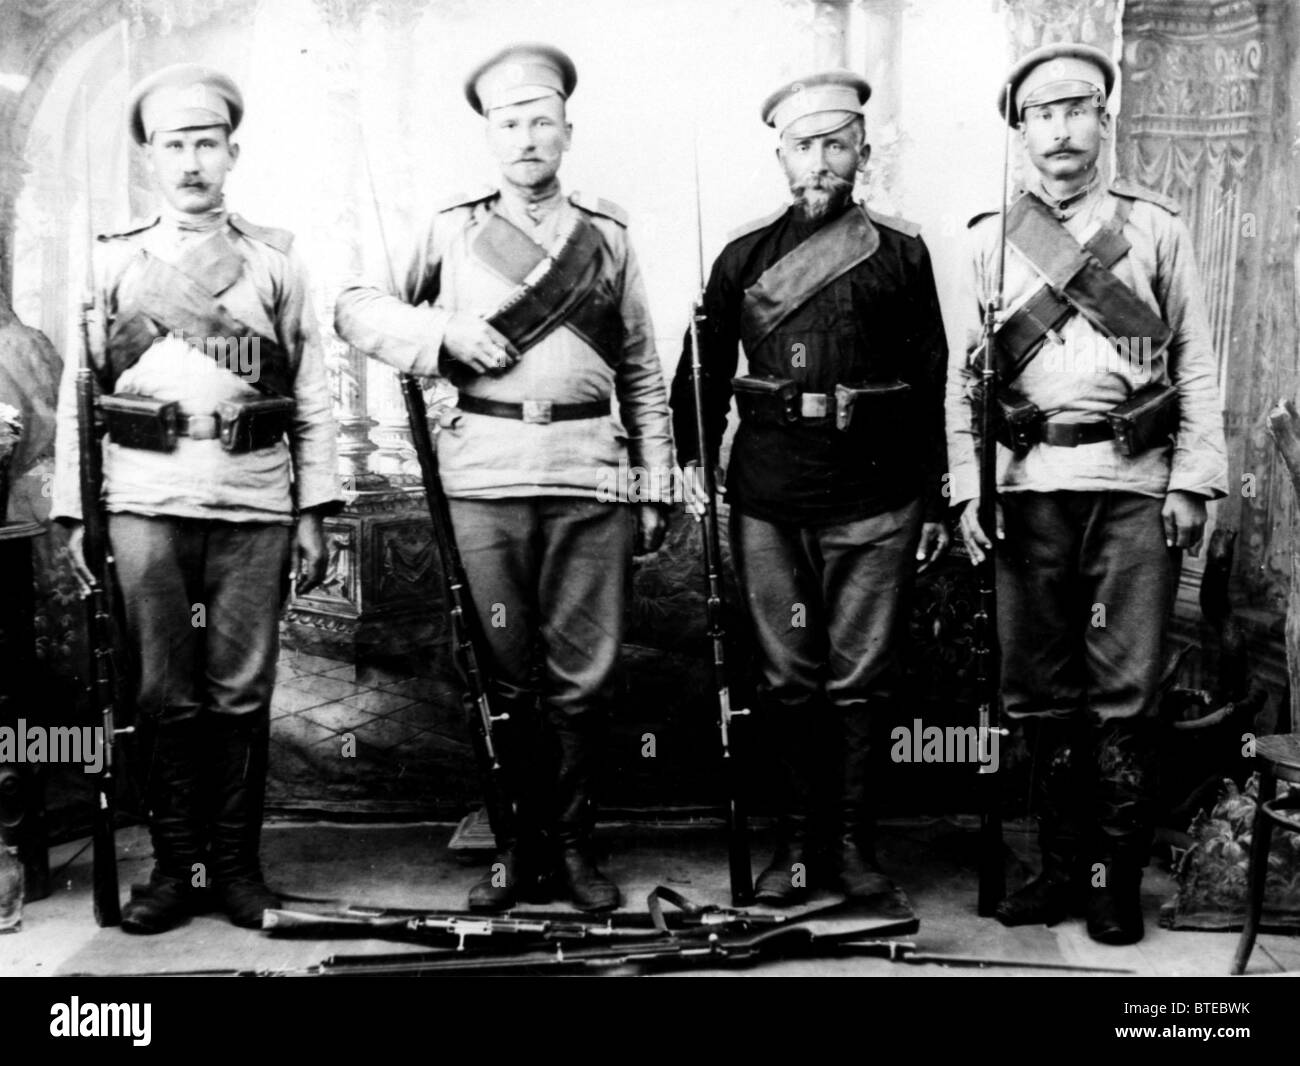 World War I. Russian soldiers. 1914. - Stock Image